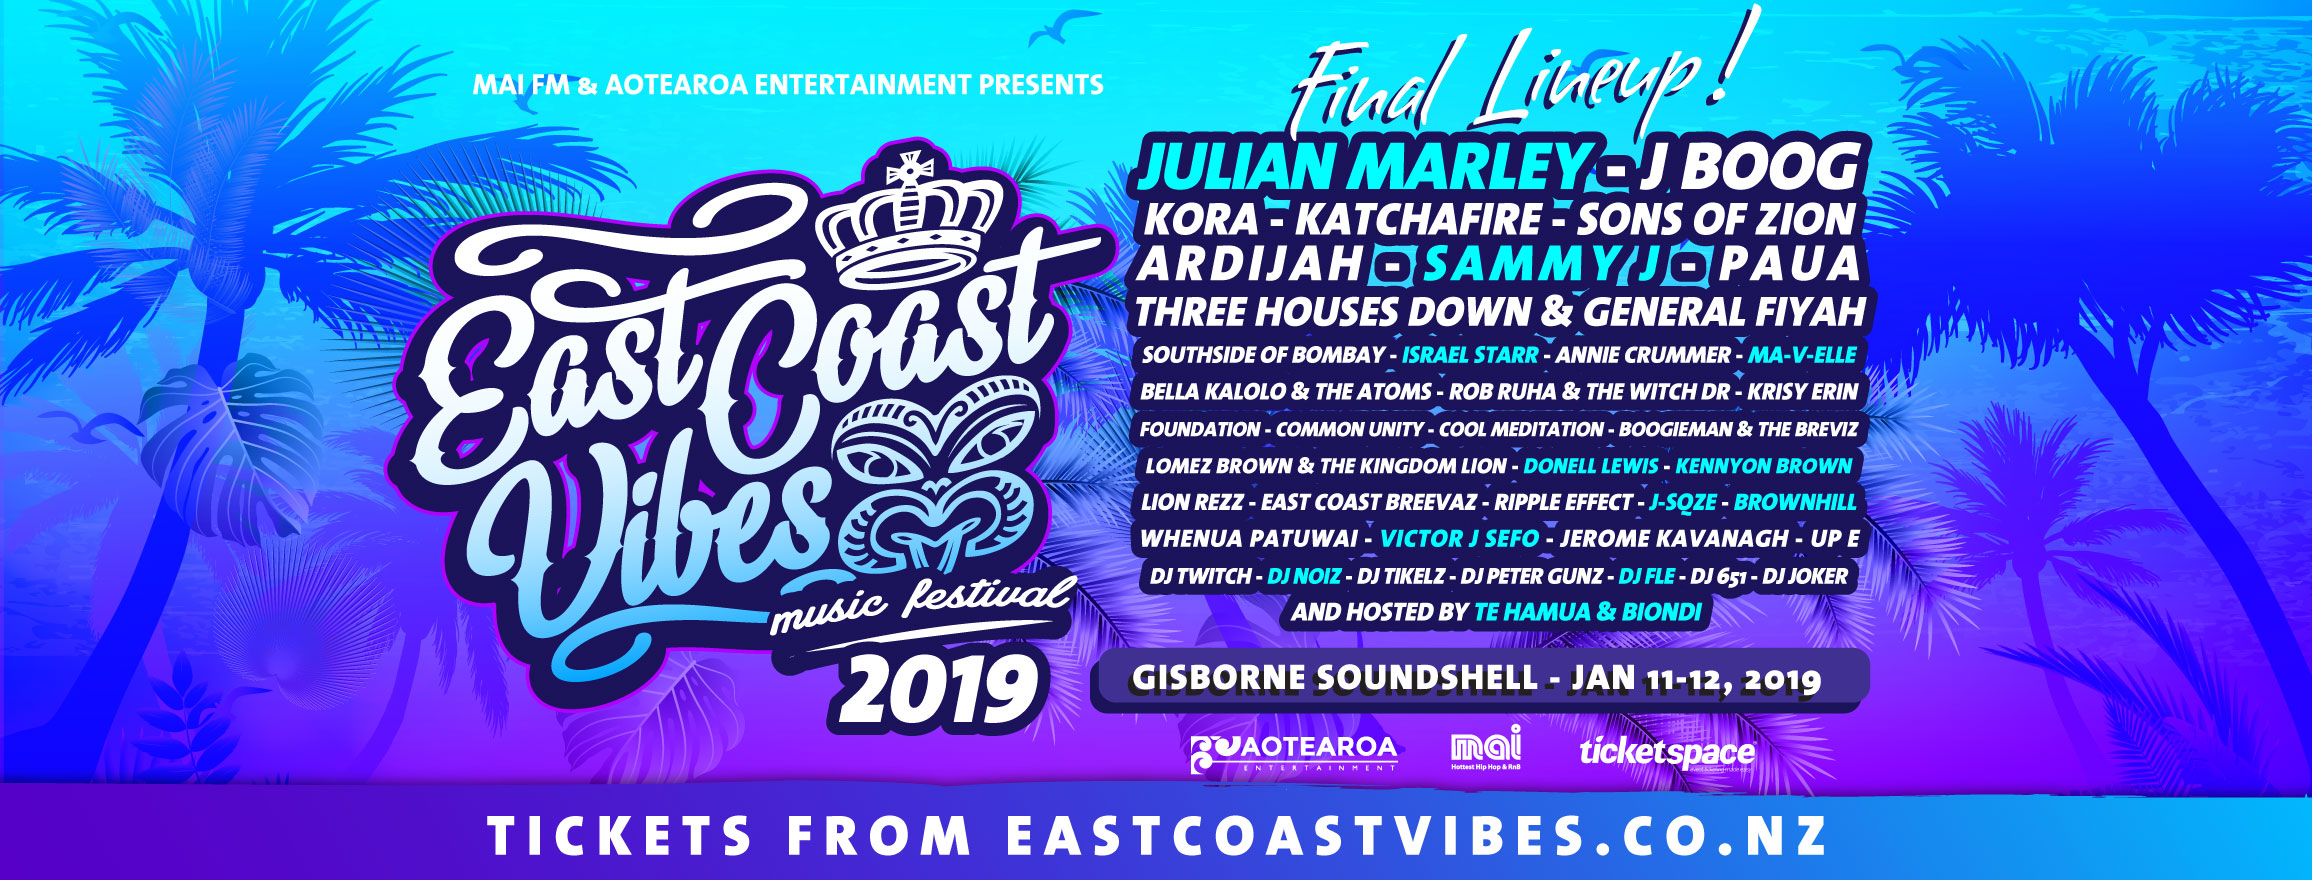 Tickets for EAST COAST VIBES - Gisborne in Gisborne from Ticketspace